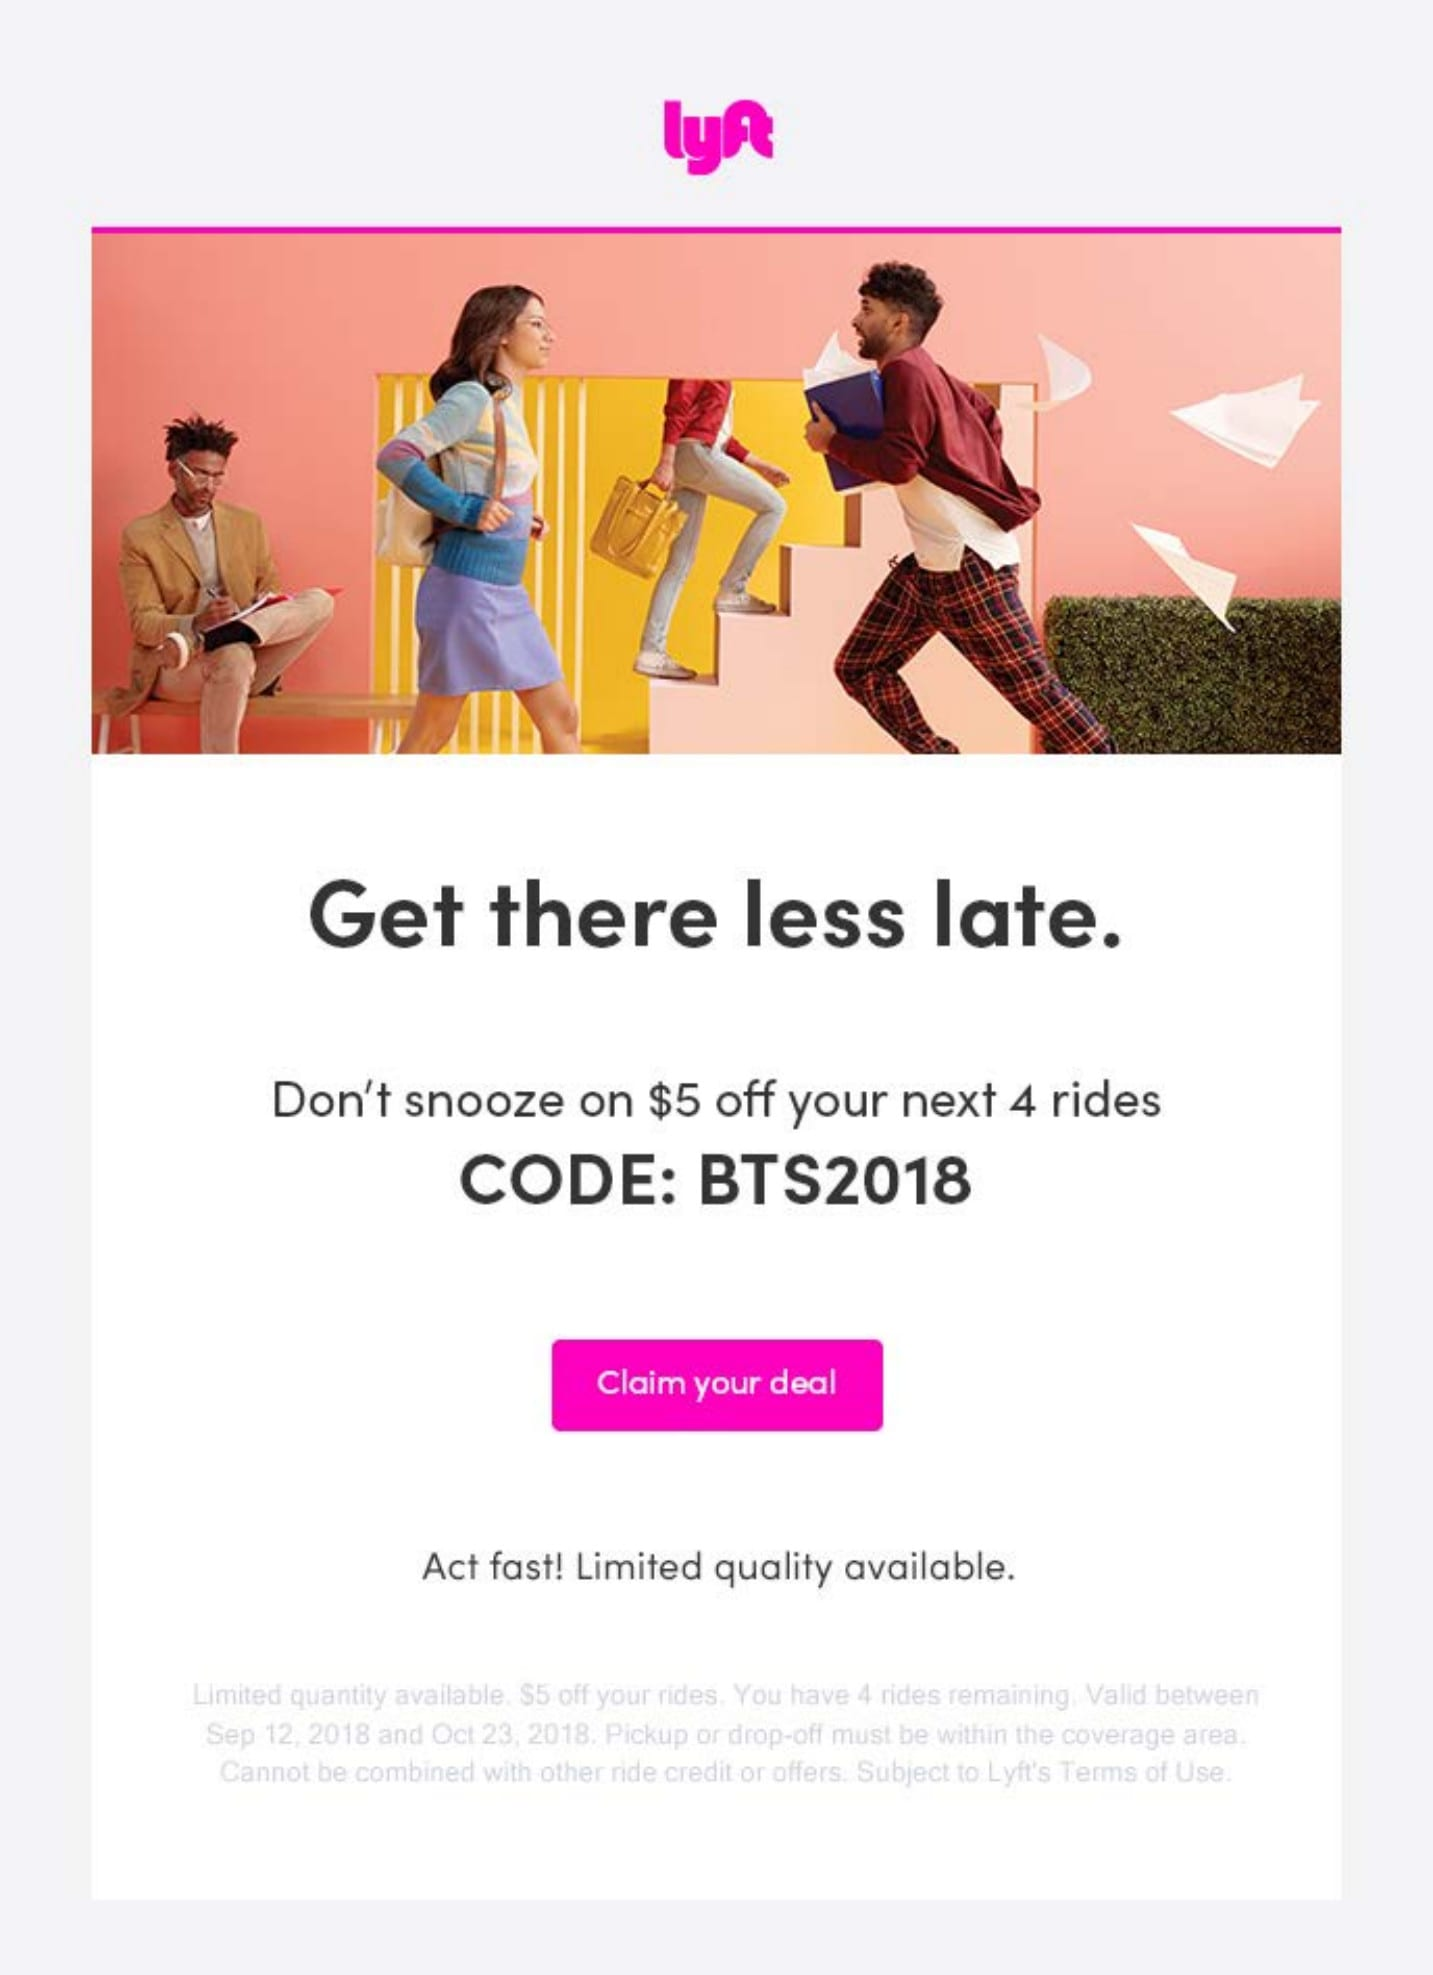 Lyft New College Activation Campaign